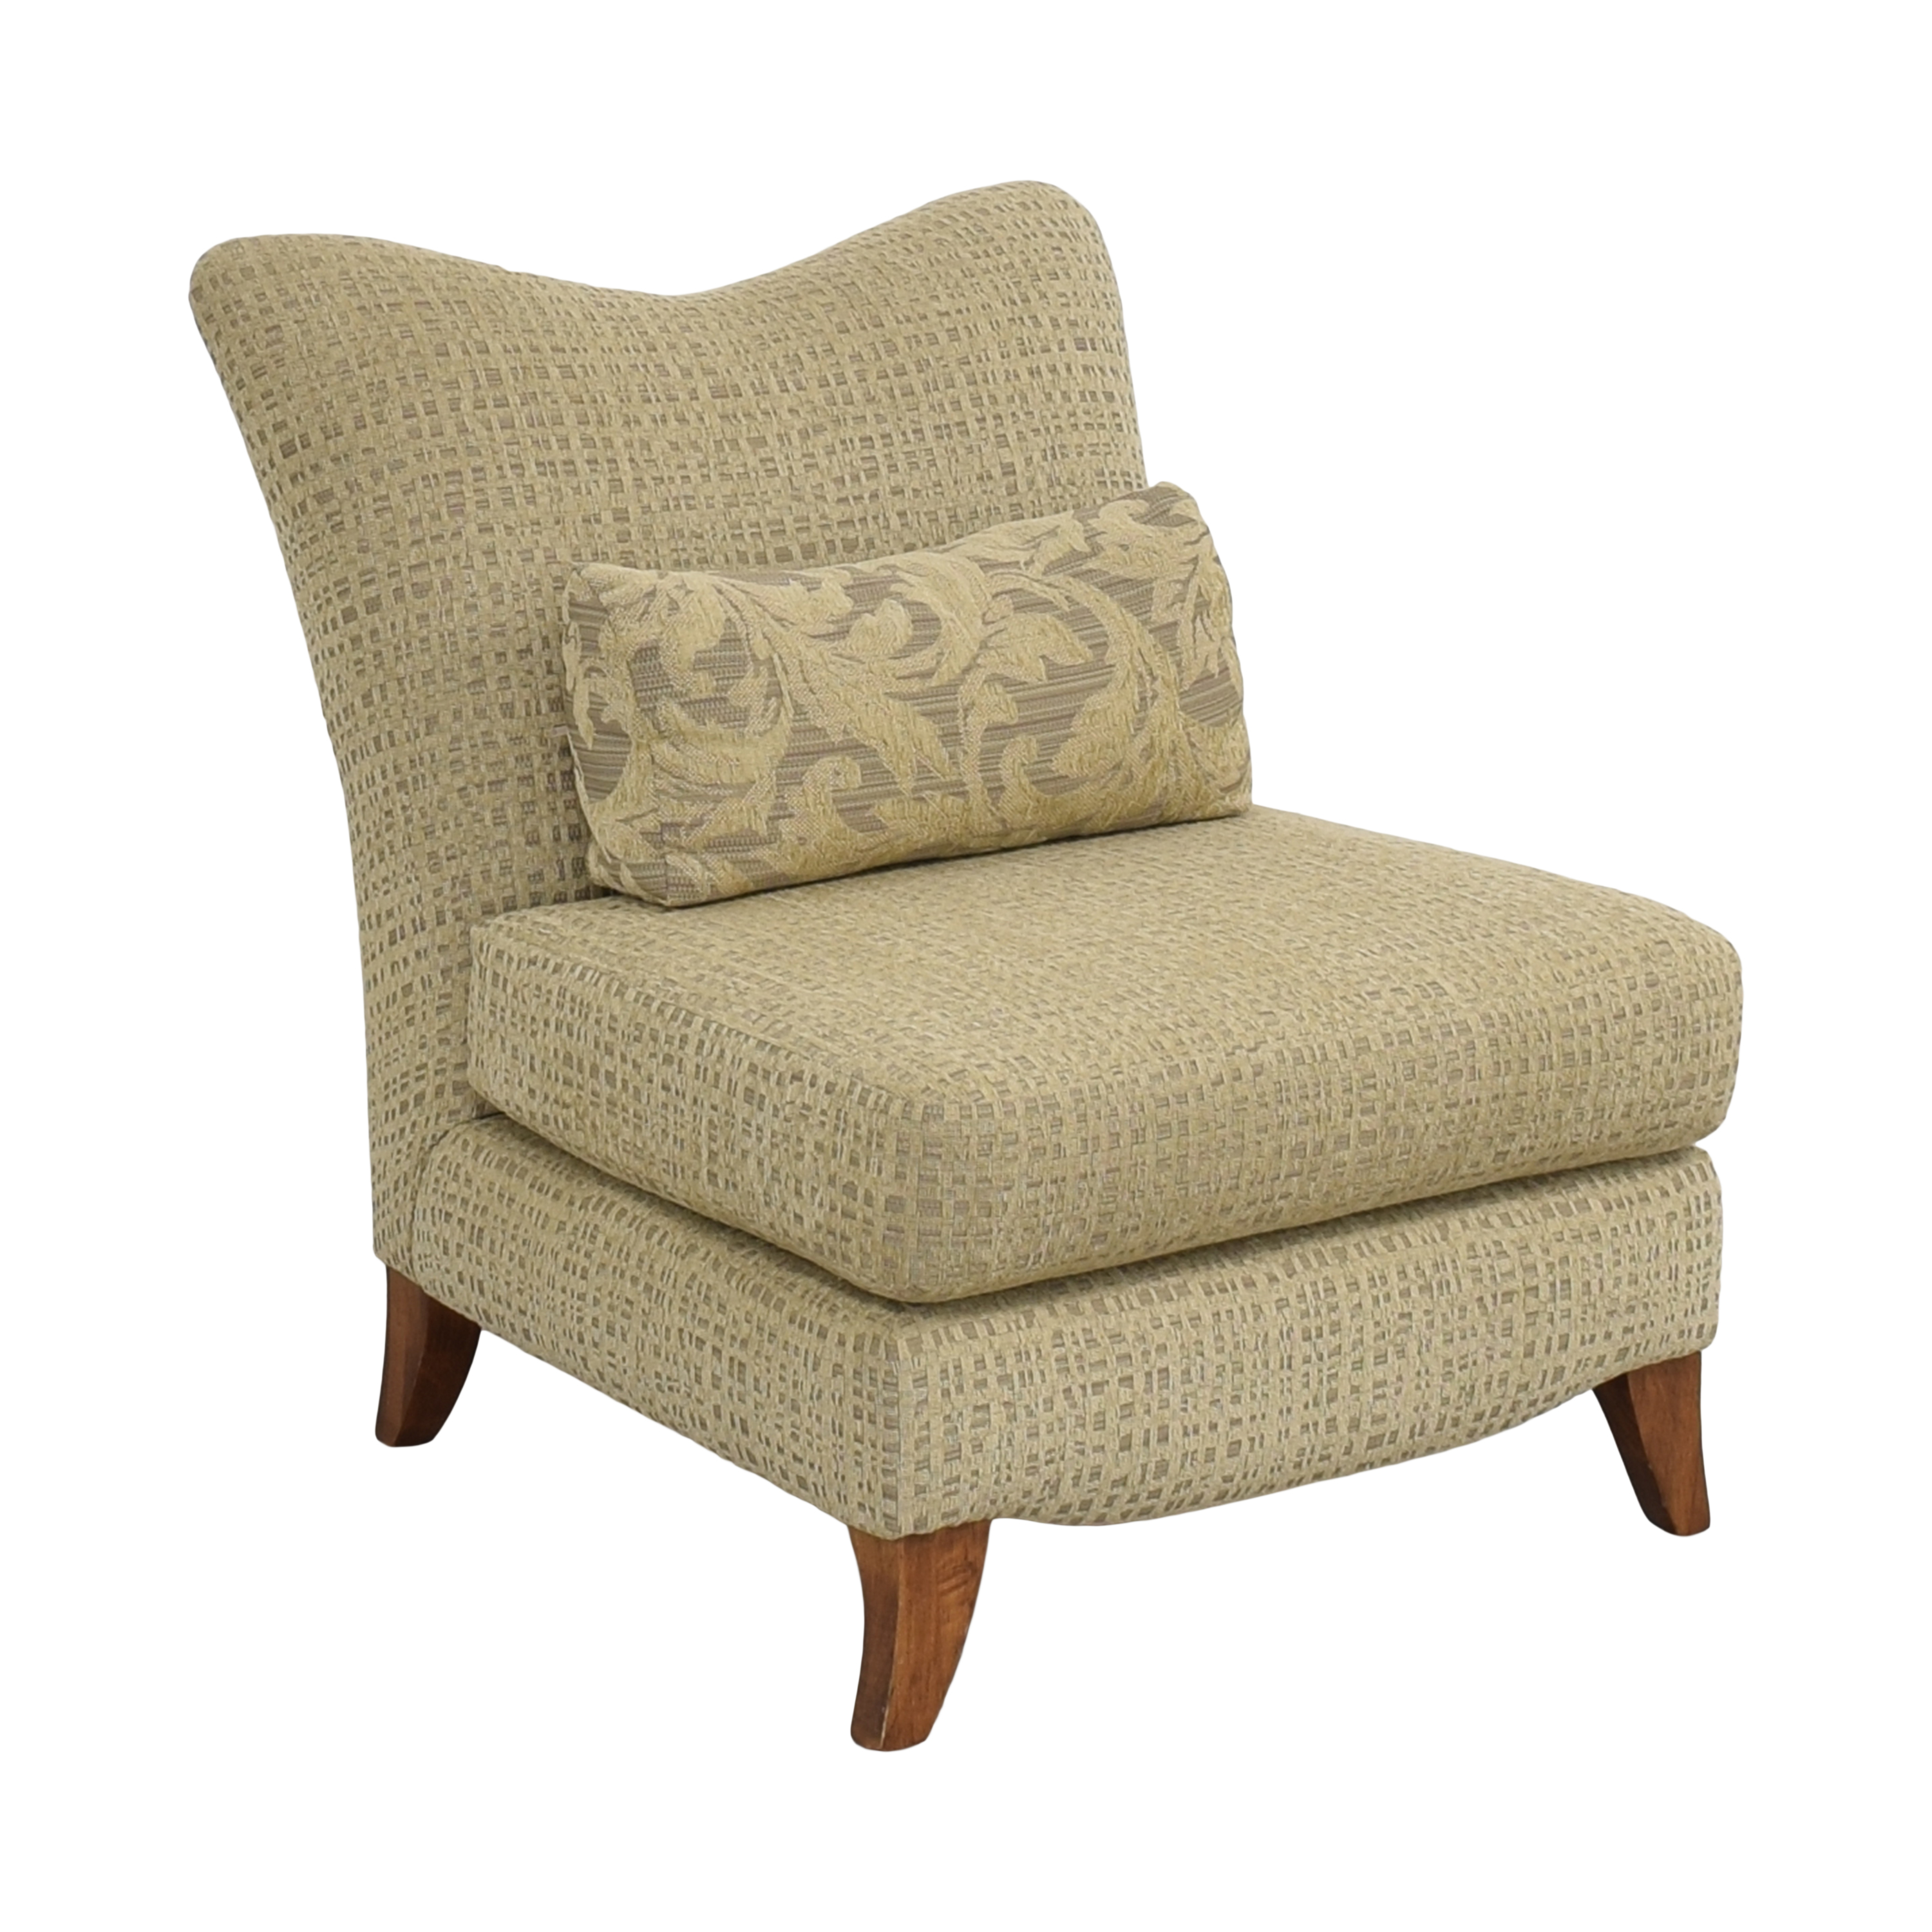 Upholstered Slipper Chair Chairs